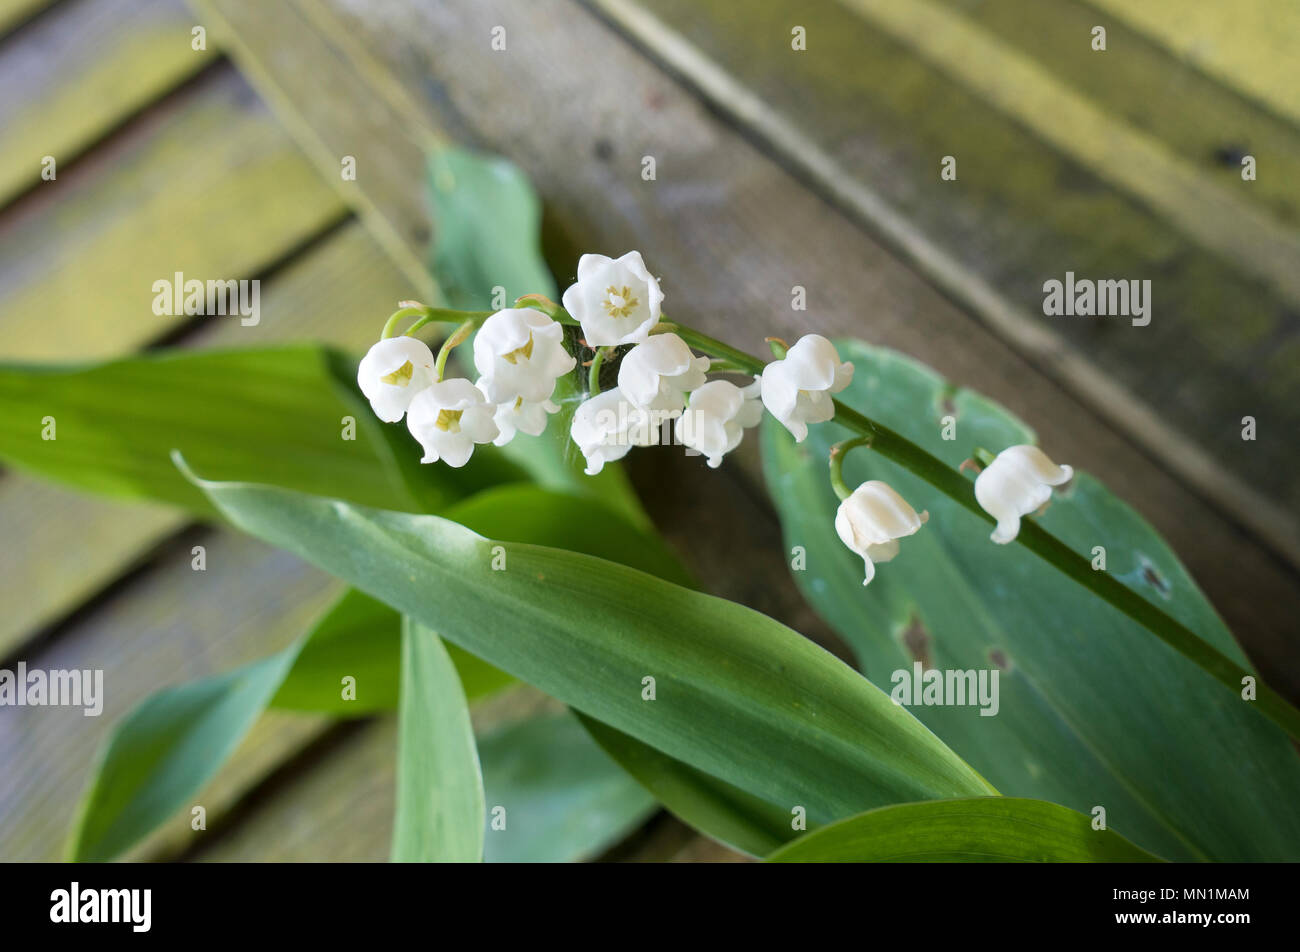 lily-of-the-valley-MN1MAM.jpg